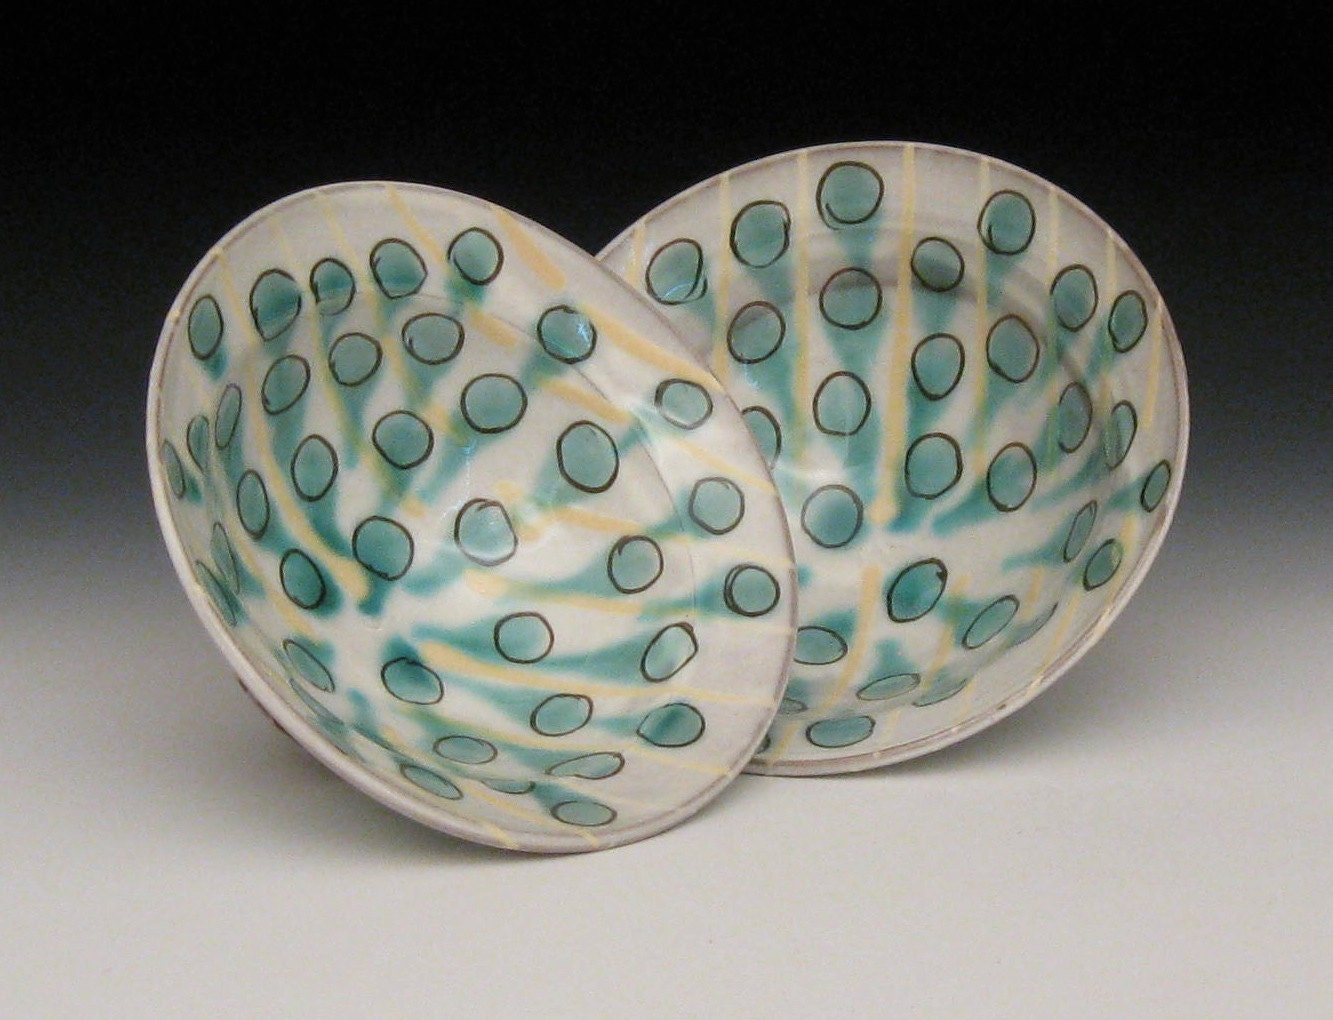 pair of salad / pasta bowls with green dots and yellow lines - brayceramics